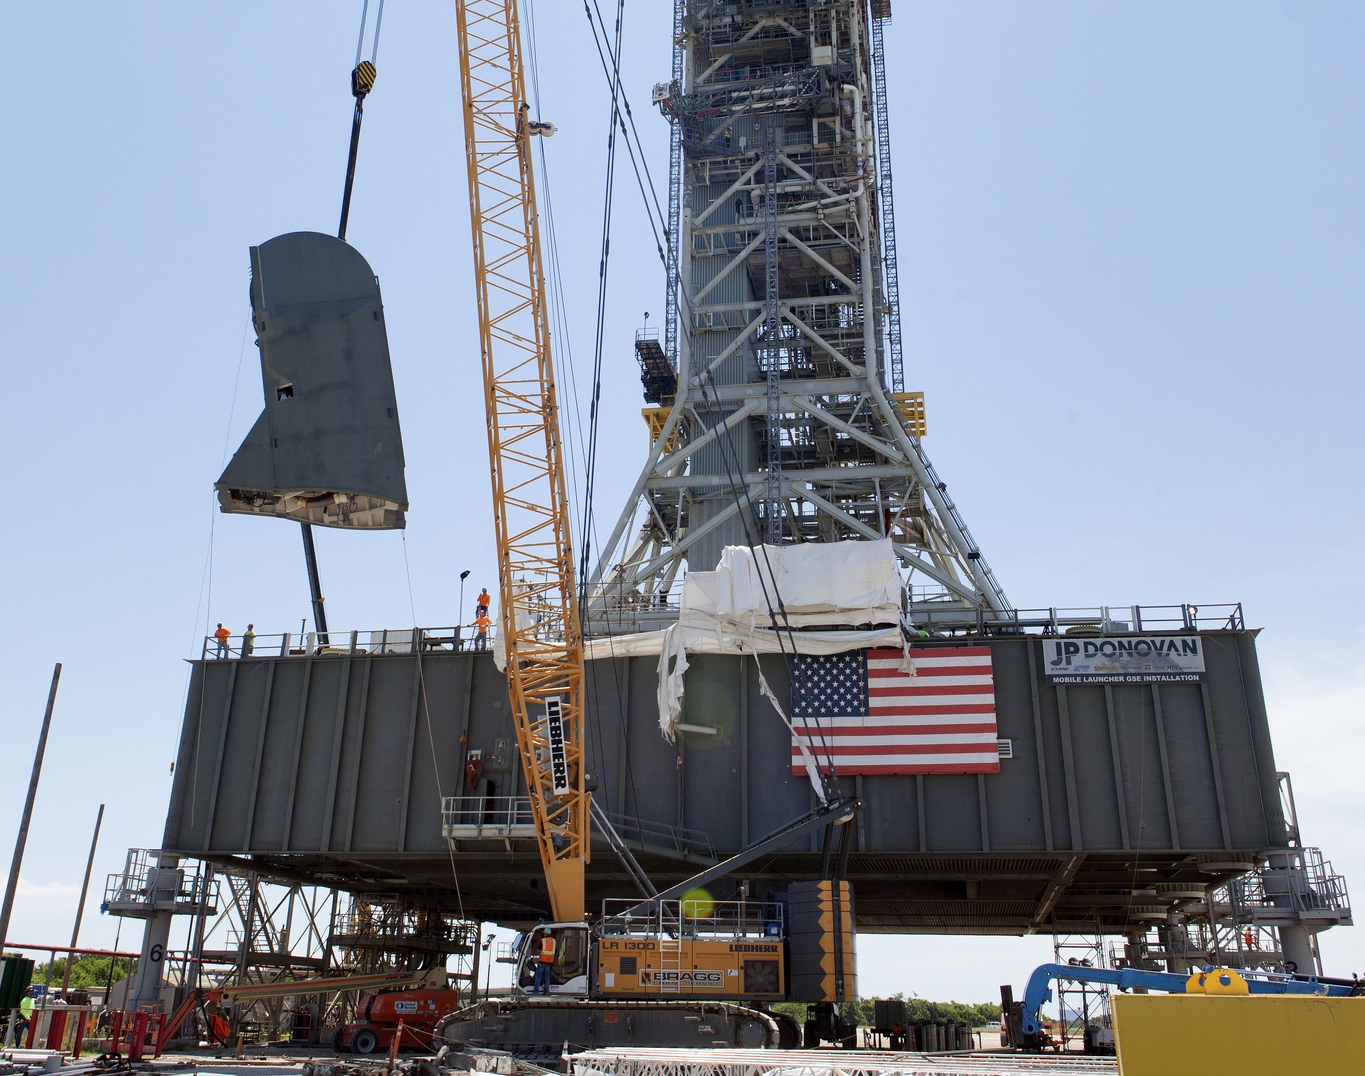 The first of two Tail Service Mast Umbilicals is lifted for installation on the mobile launcher July 12, 2018, at NASA's Kennedy Space Center in Florida.